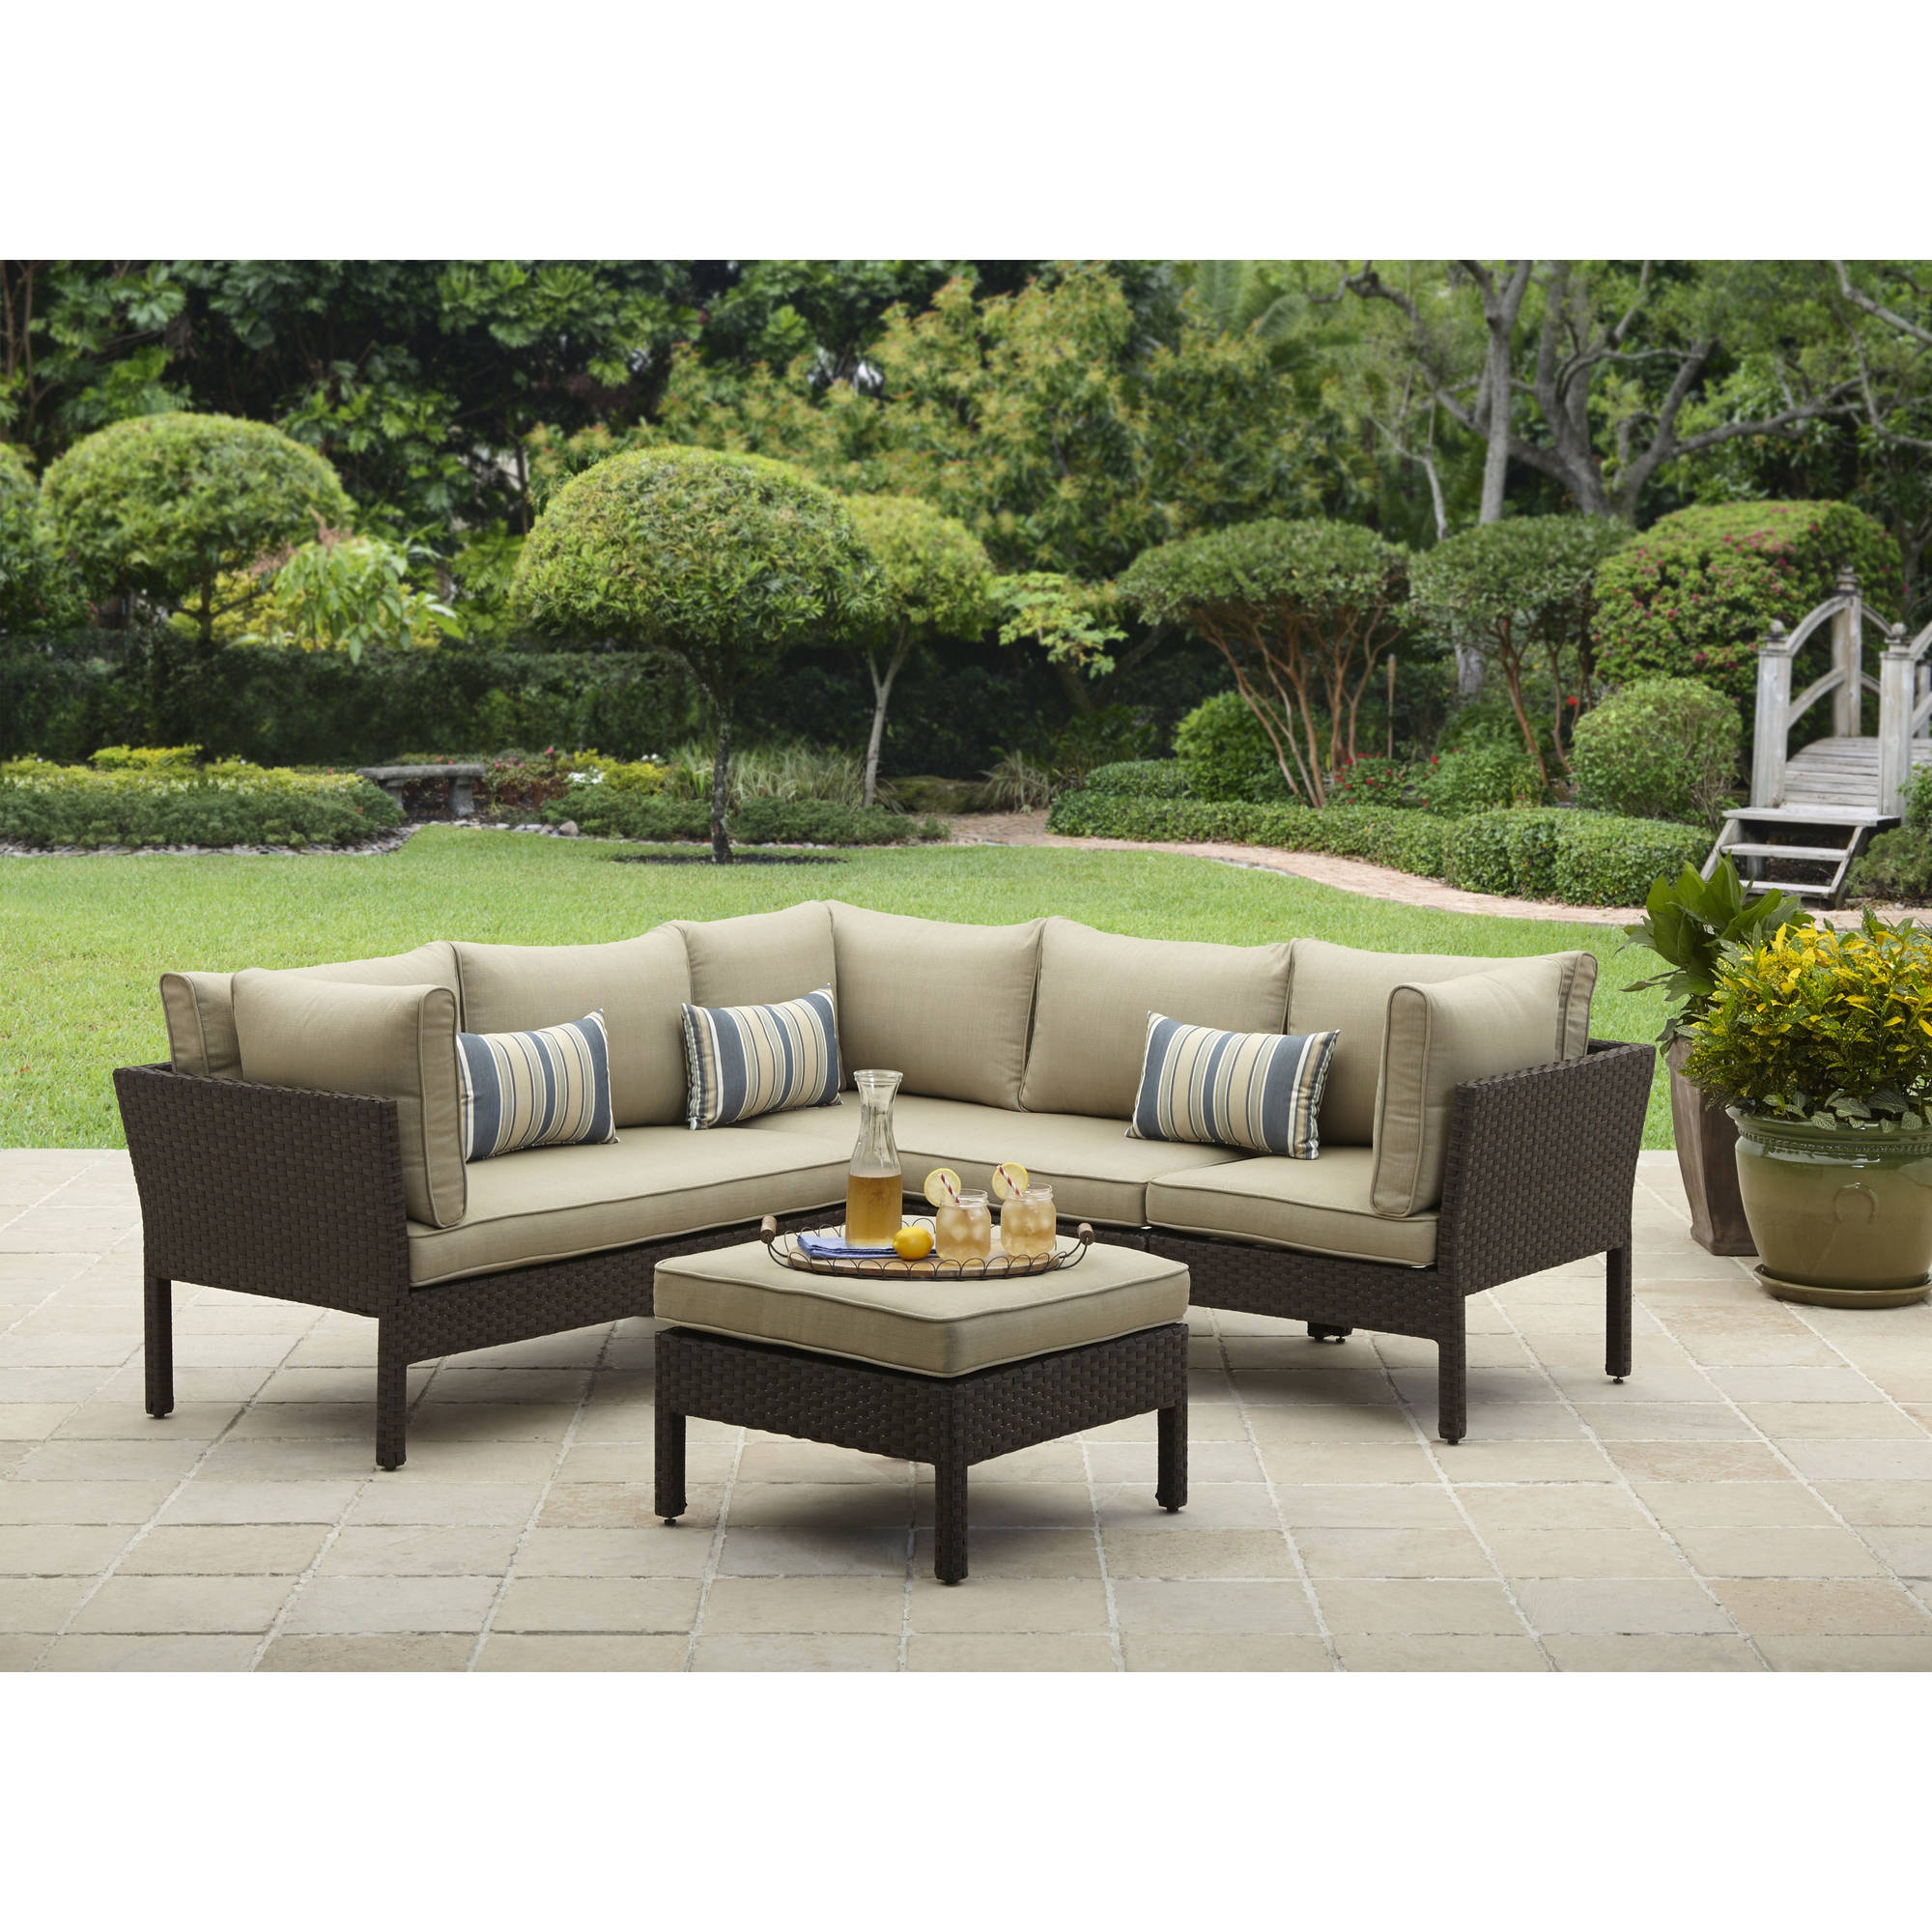 Superior Better Homes And Gardens Avila Beach 4 Piece Sectional   Walmart.com